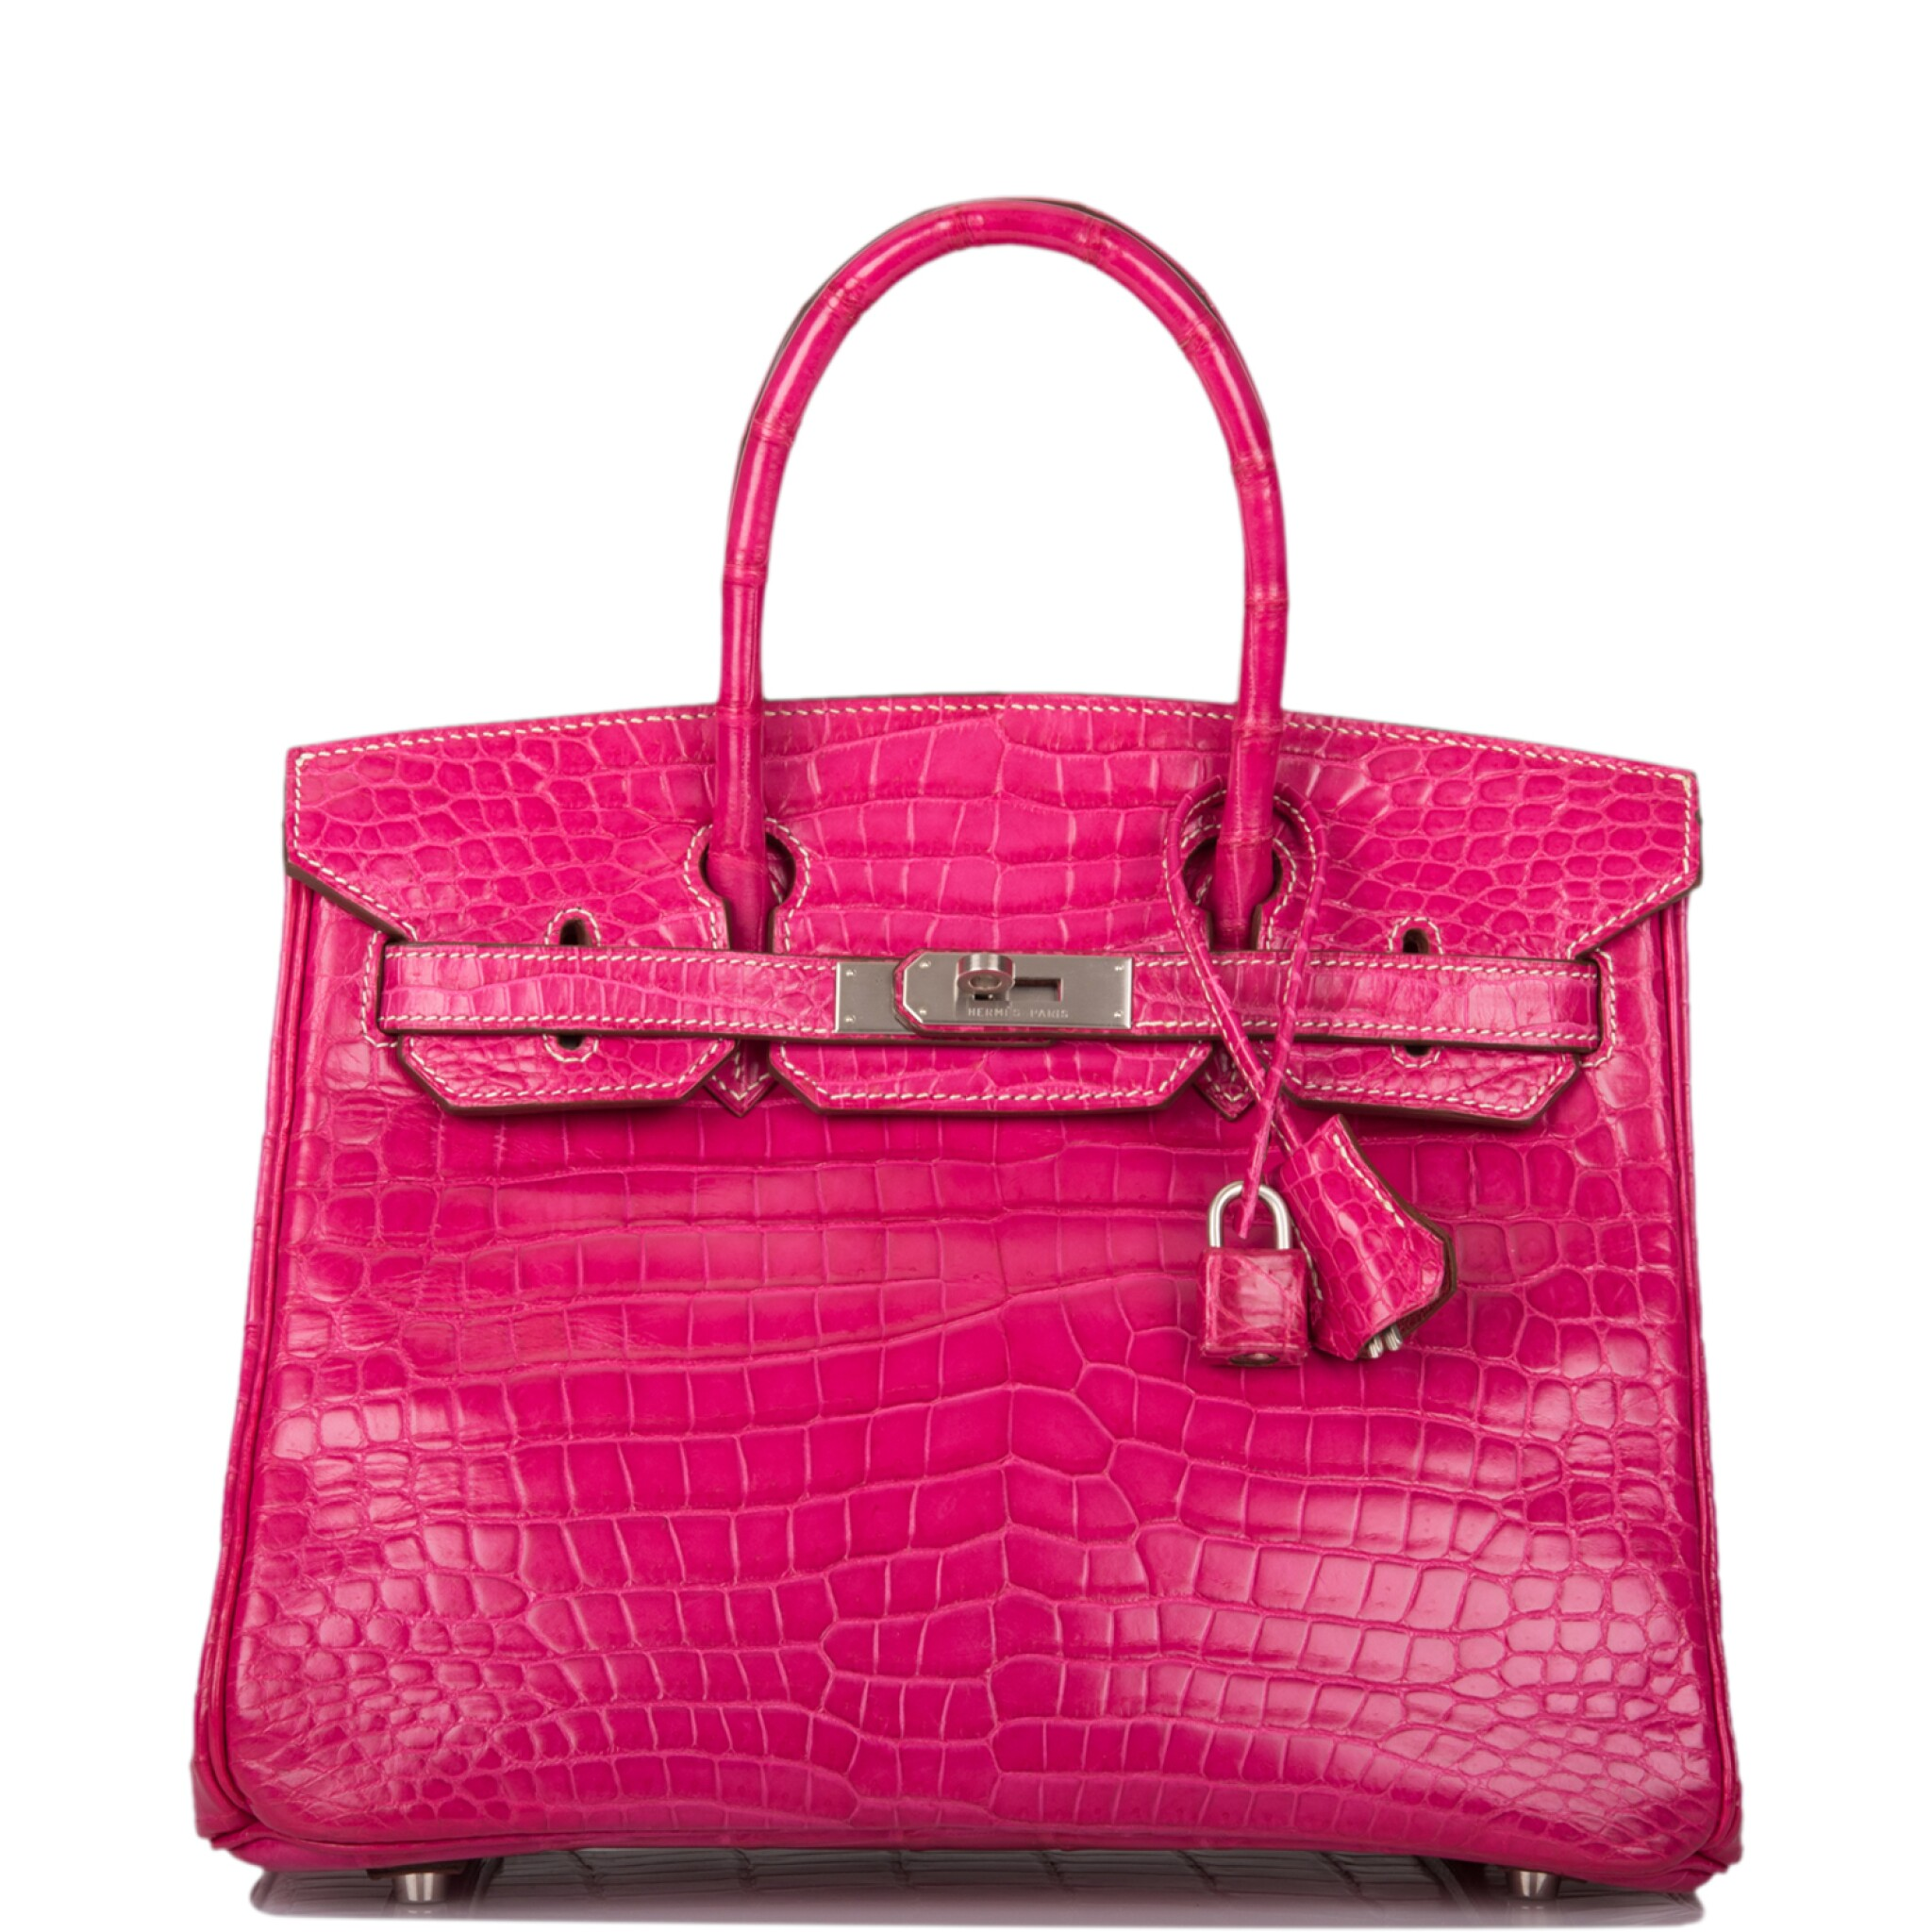 View full screen - View 1 of Lot 27. HERMÈS   SPECIAL ORDER (SO) FUCHSIA AND ROUGE GARANCE BIRKIN 30CM OF MATTE POROSUS CROCODILE BRUSHED WITH PALLADIUM HARDWARE.